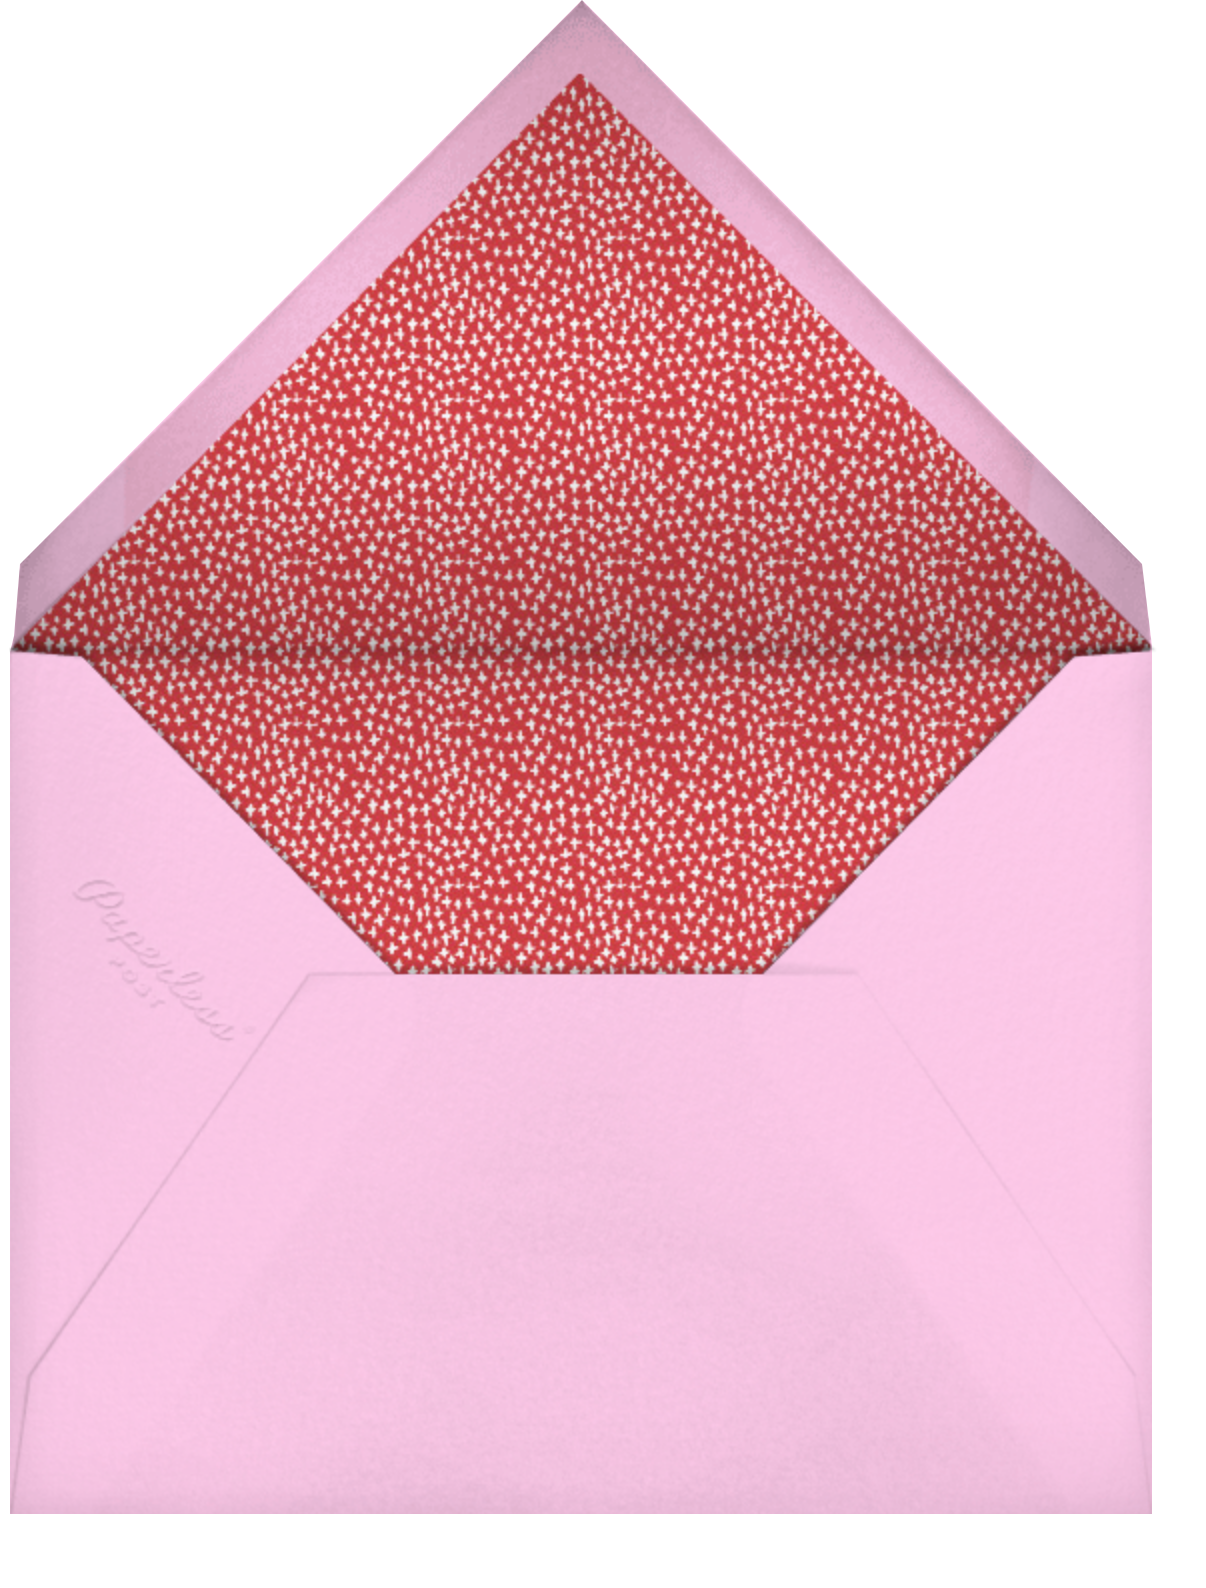 Throwback - Mr. Boddington's Studio - Valentine's Day - envelope back